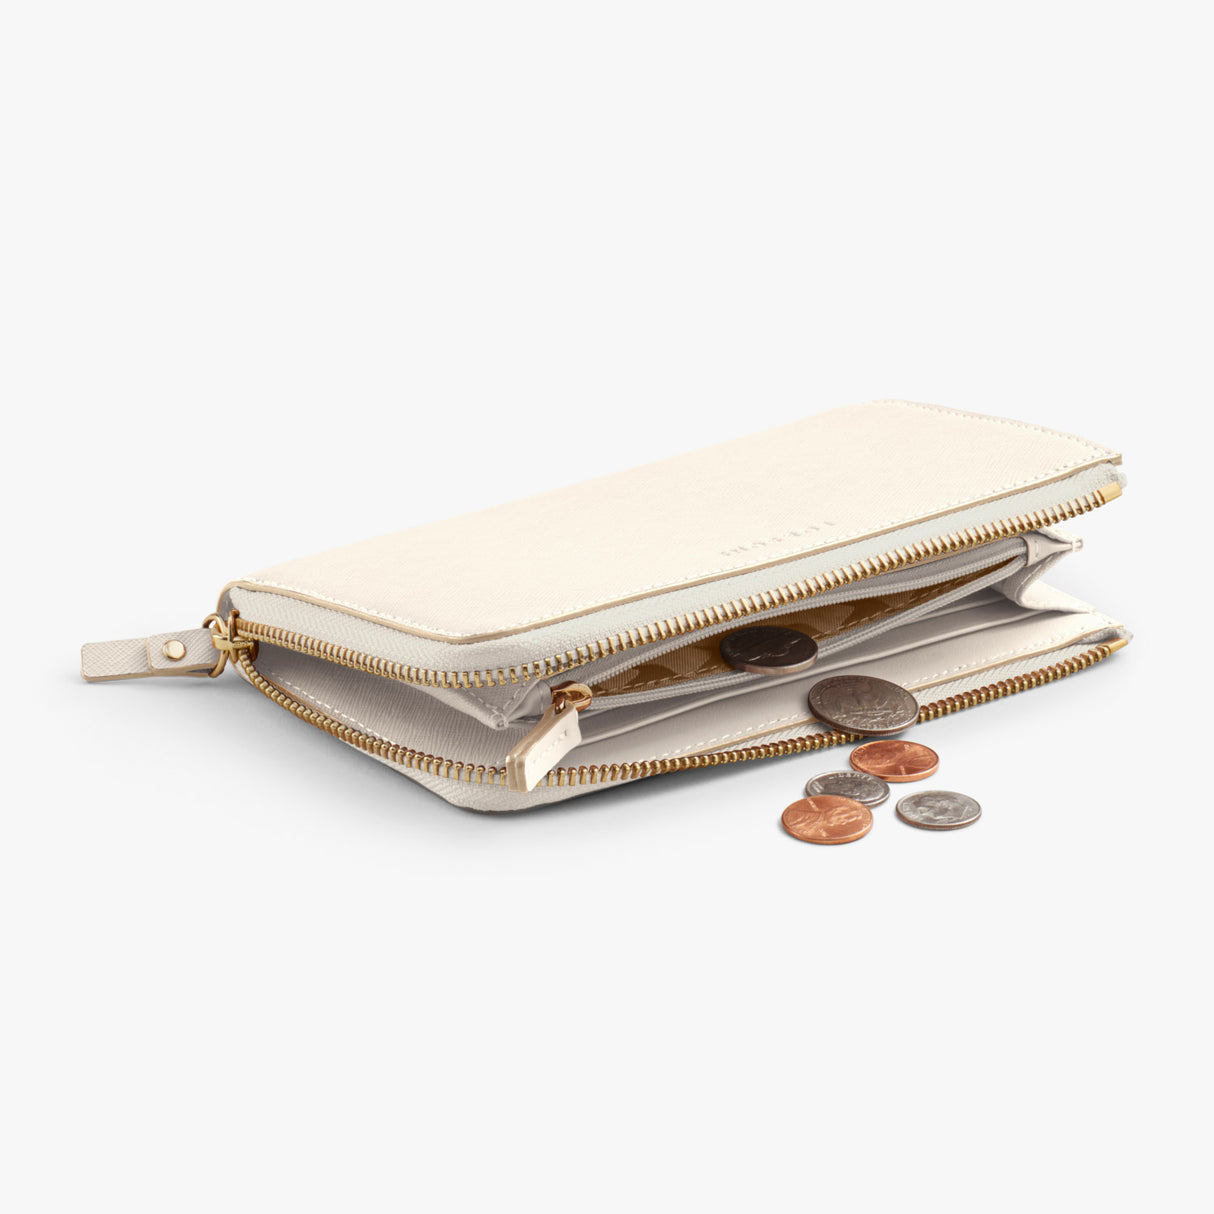 Coin - The Leather Wallet - Saffiano Leather - Ivory / Gold / Camel - Small Accessory - Lo & Sons